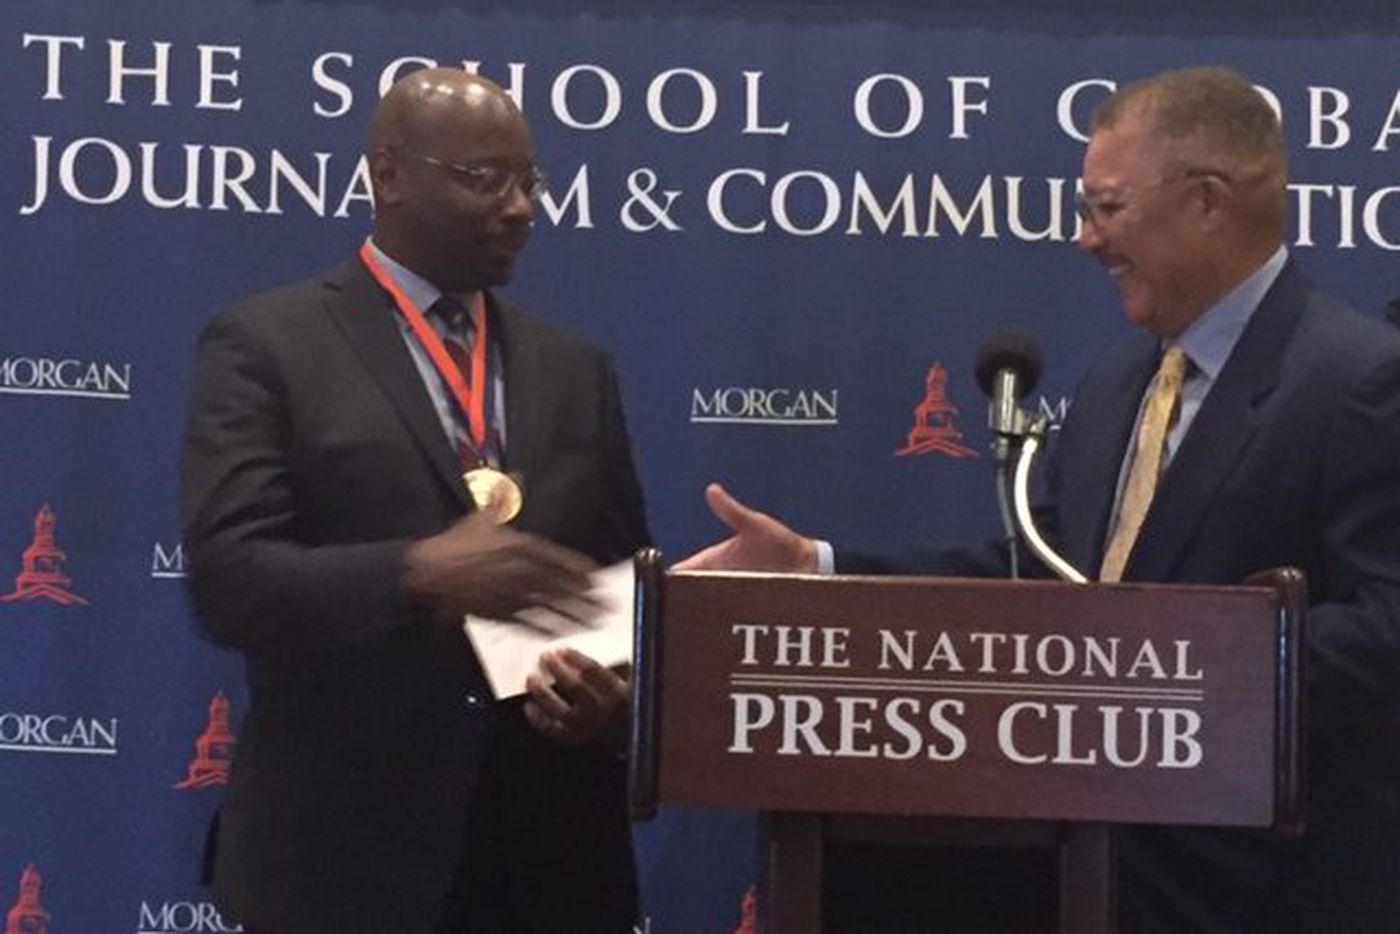 Inquirer and Daily News reporter receives award for distinguished coverage of black life